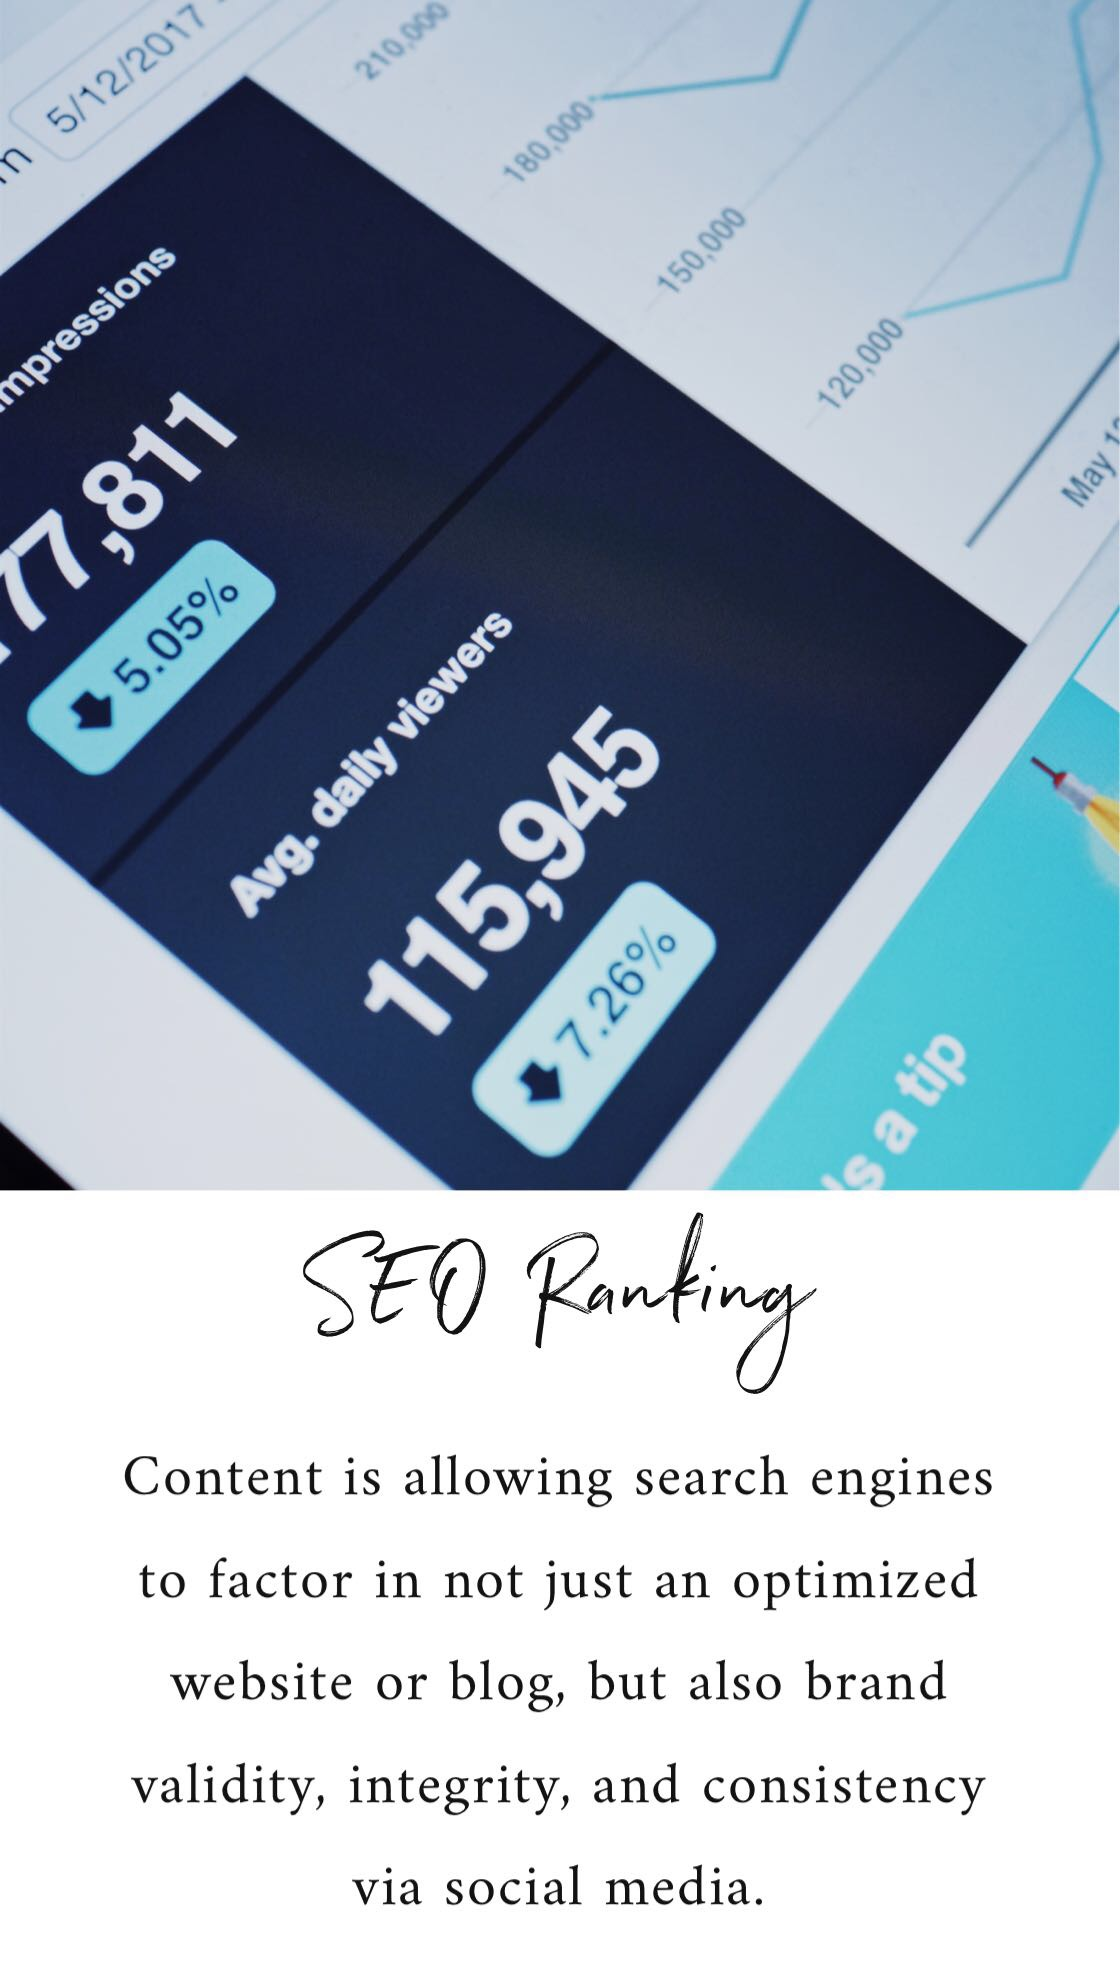 SEO Ranking Social Media South Florida